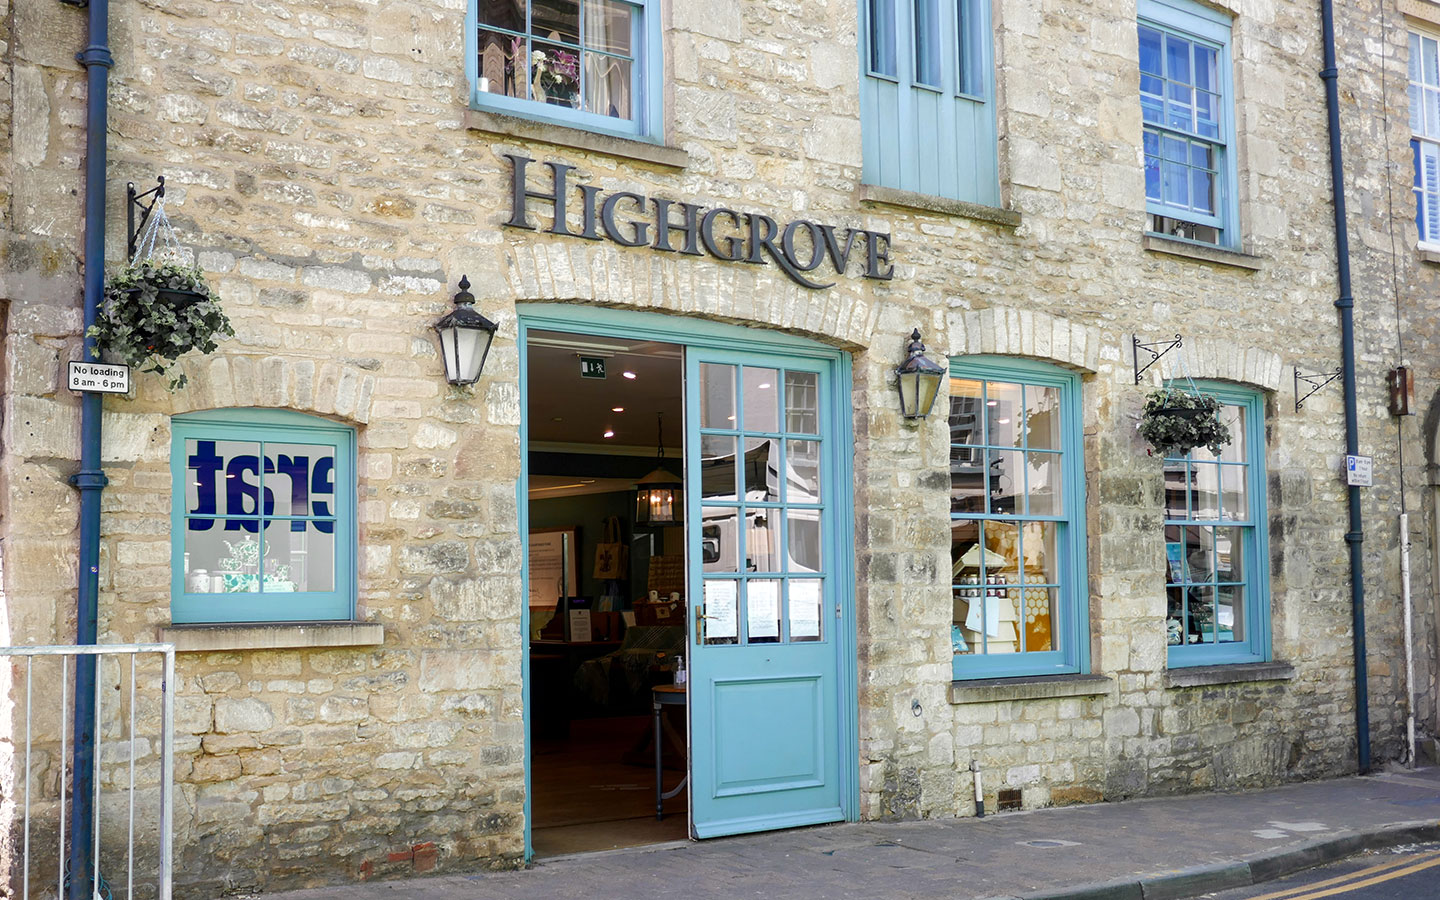 The Highgrove Shop in Tetbury, Cotswolds